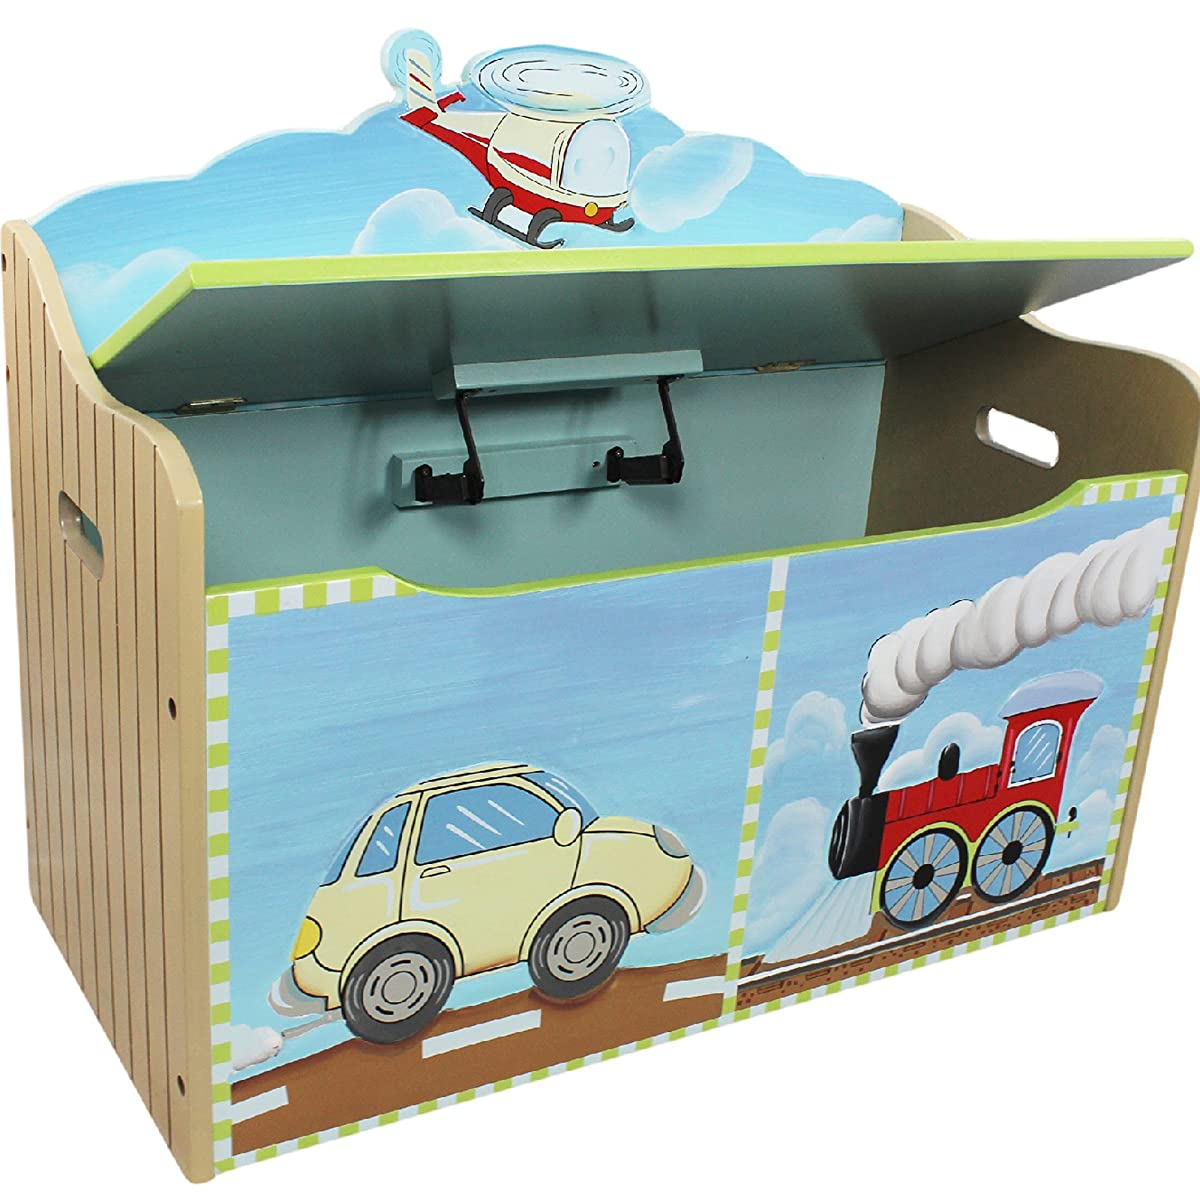 Toy Chest with Safety Hinges Imagination Inspiring Hand Crafted